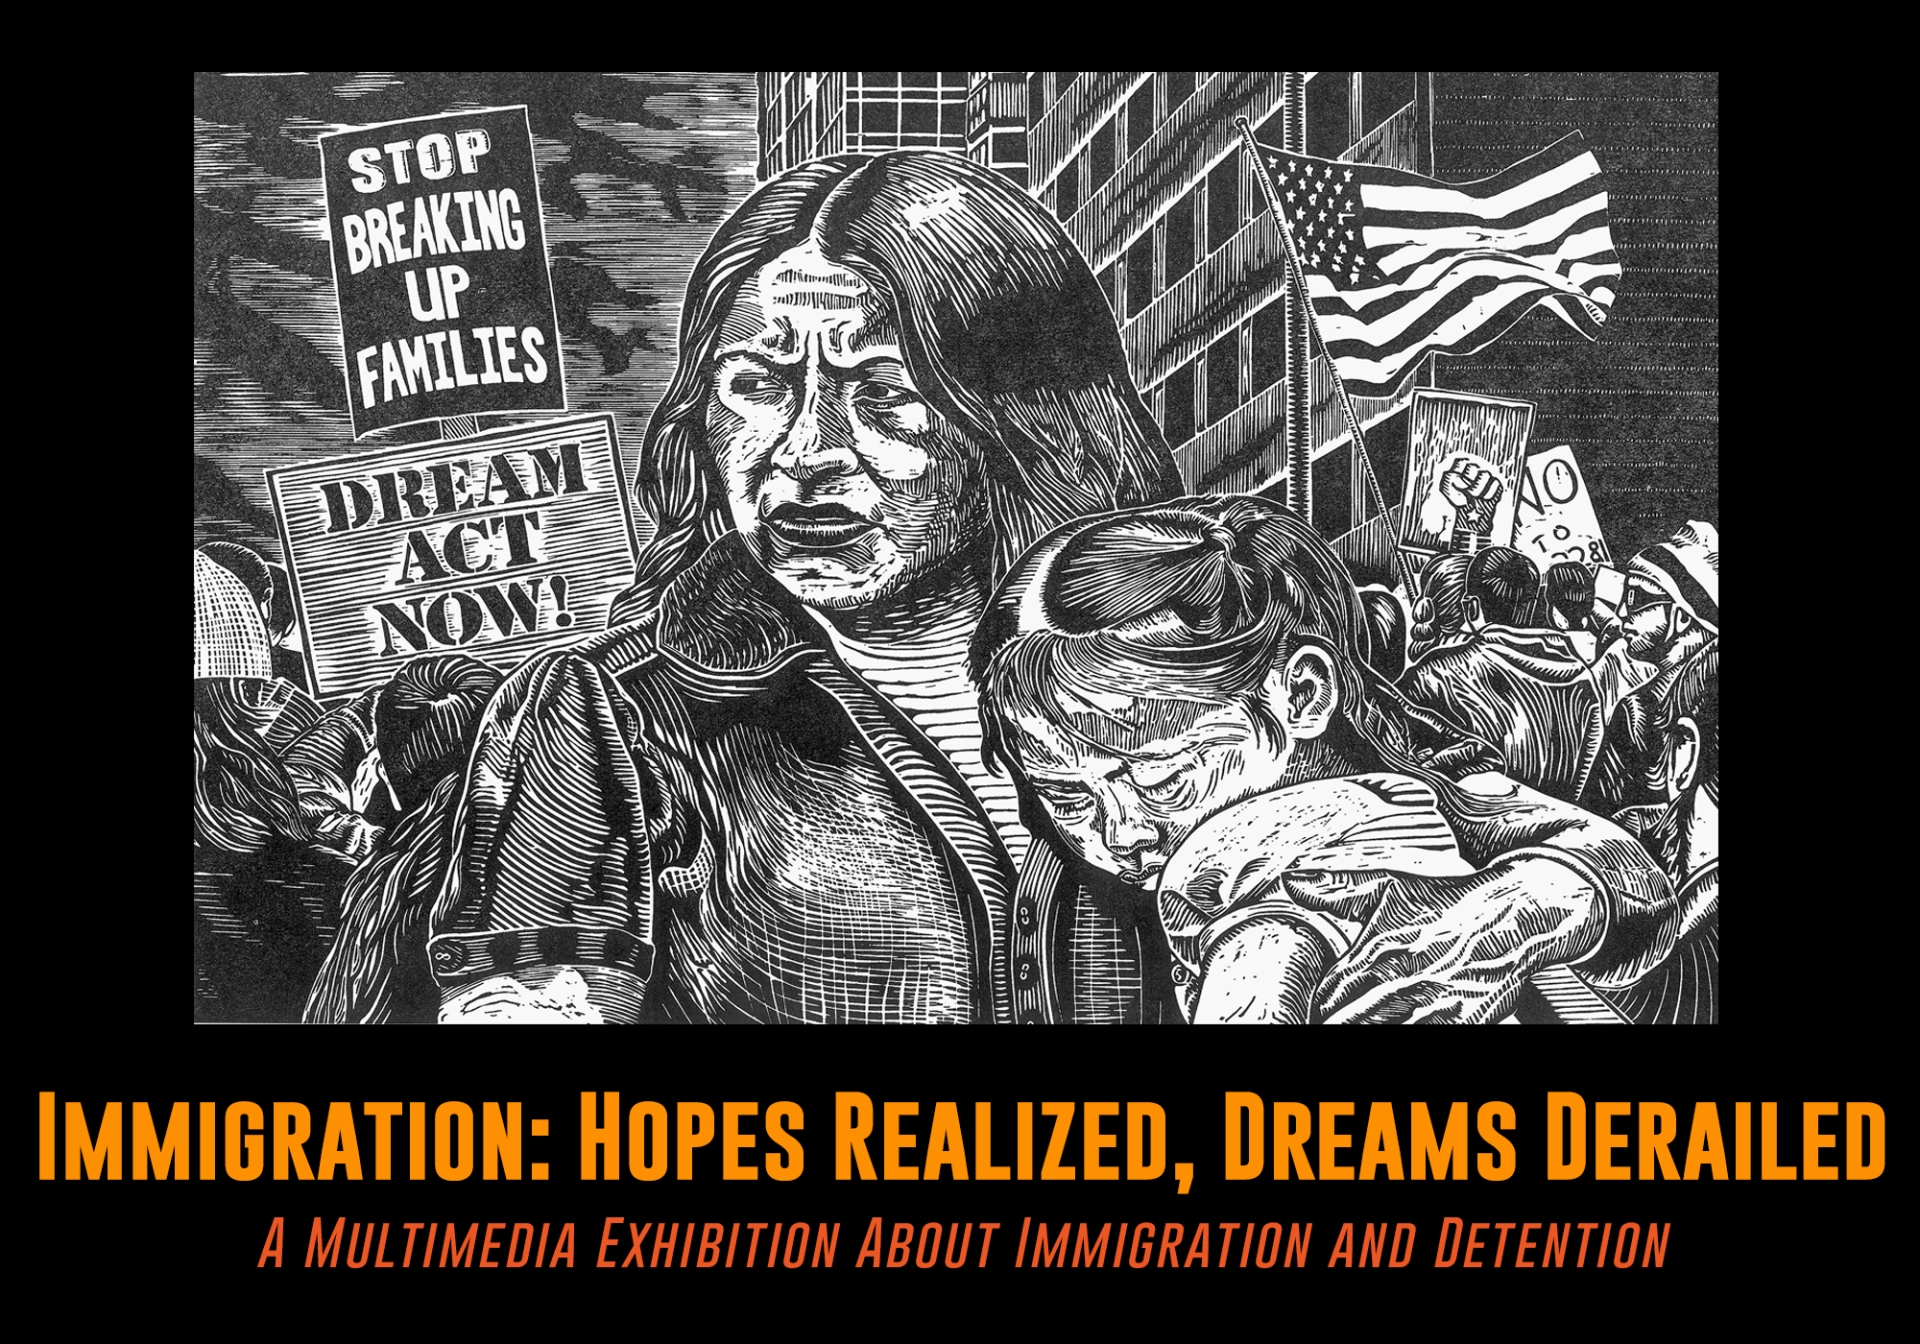 Immigration: Hopes Realized, Dreams Derailed